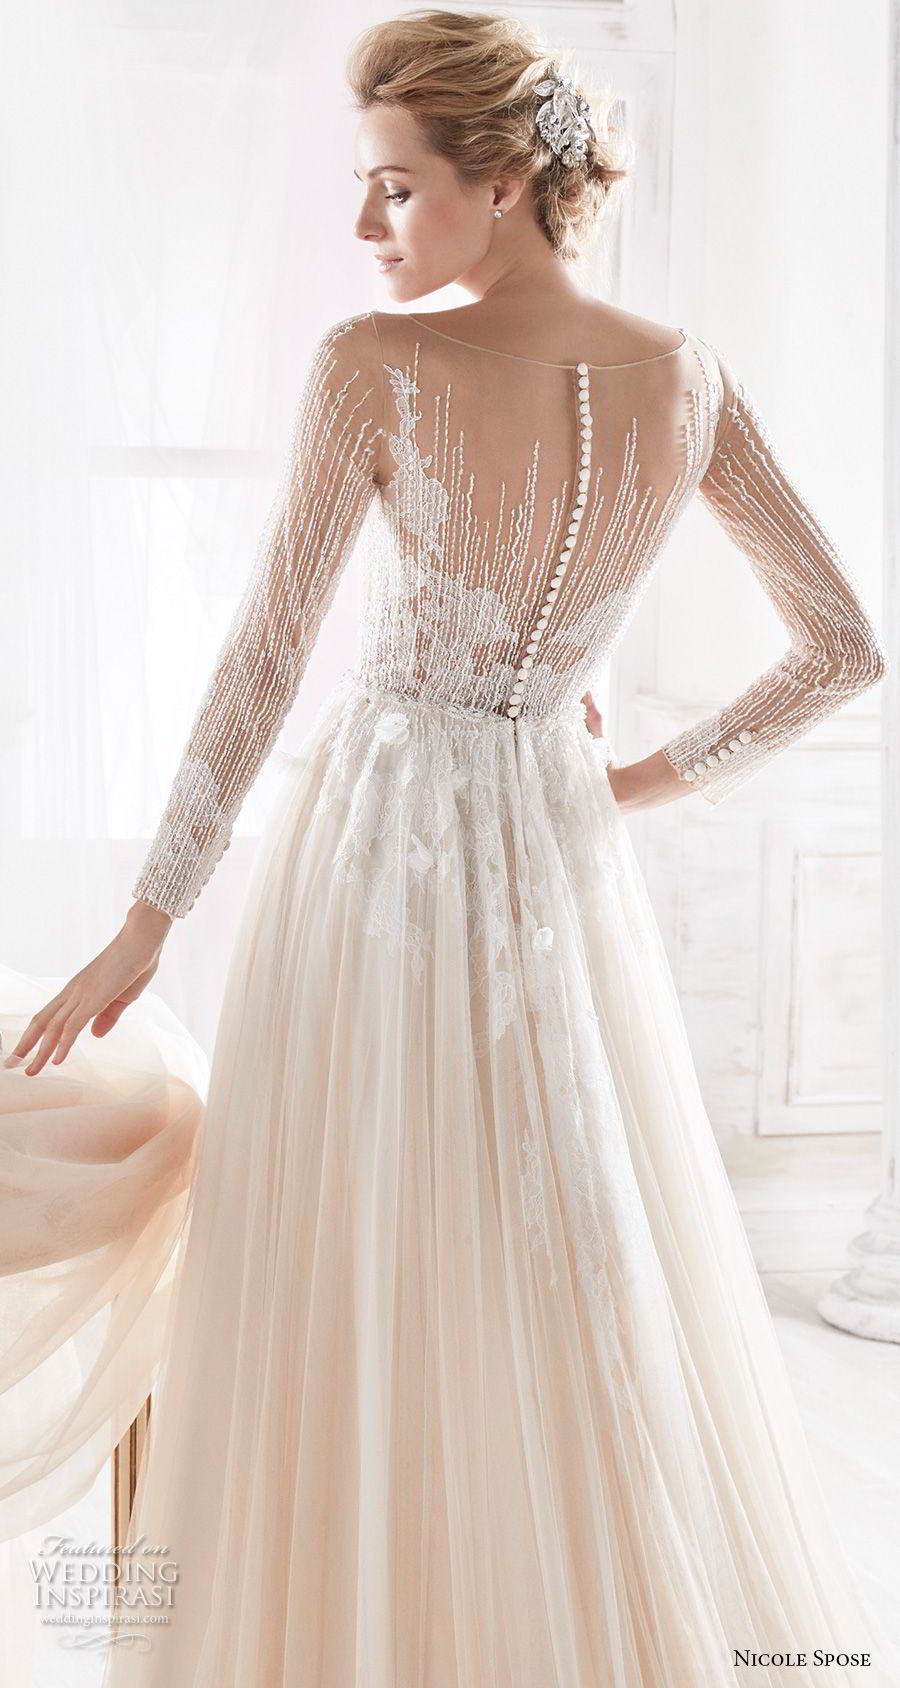 nicole spose 2018 bridal long sleeves sheer bateau sweetheart neckline heavily embellished bodice blush soft a line wedding dress sheer button back chapel train (6) bv